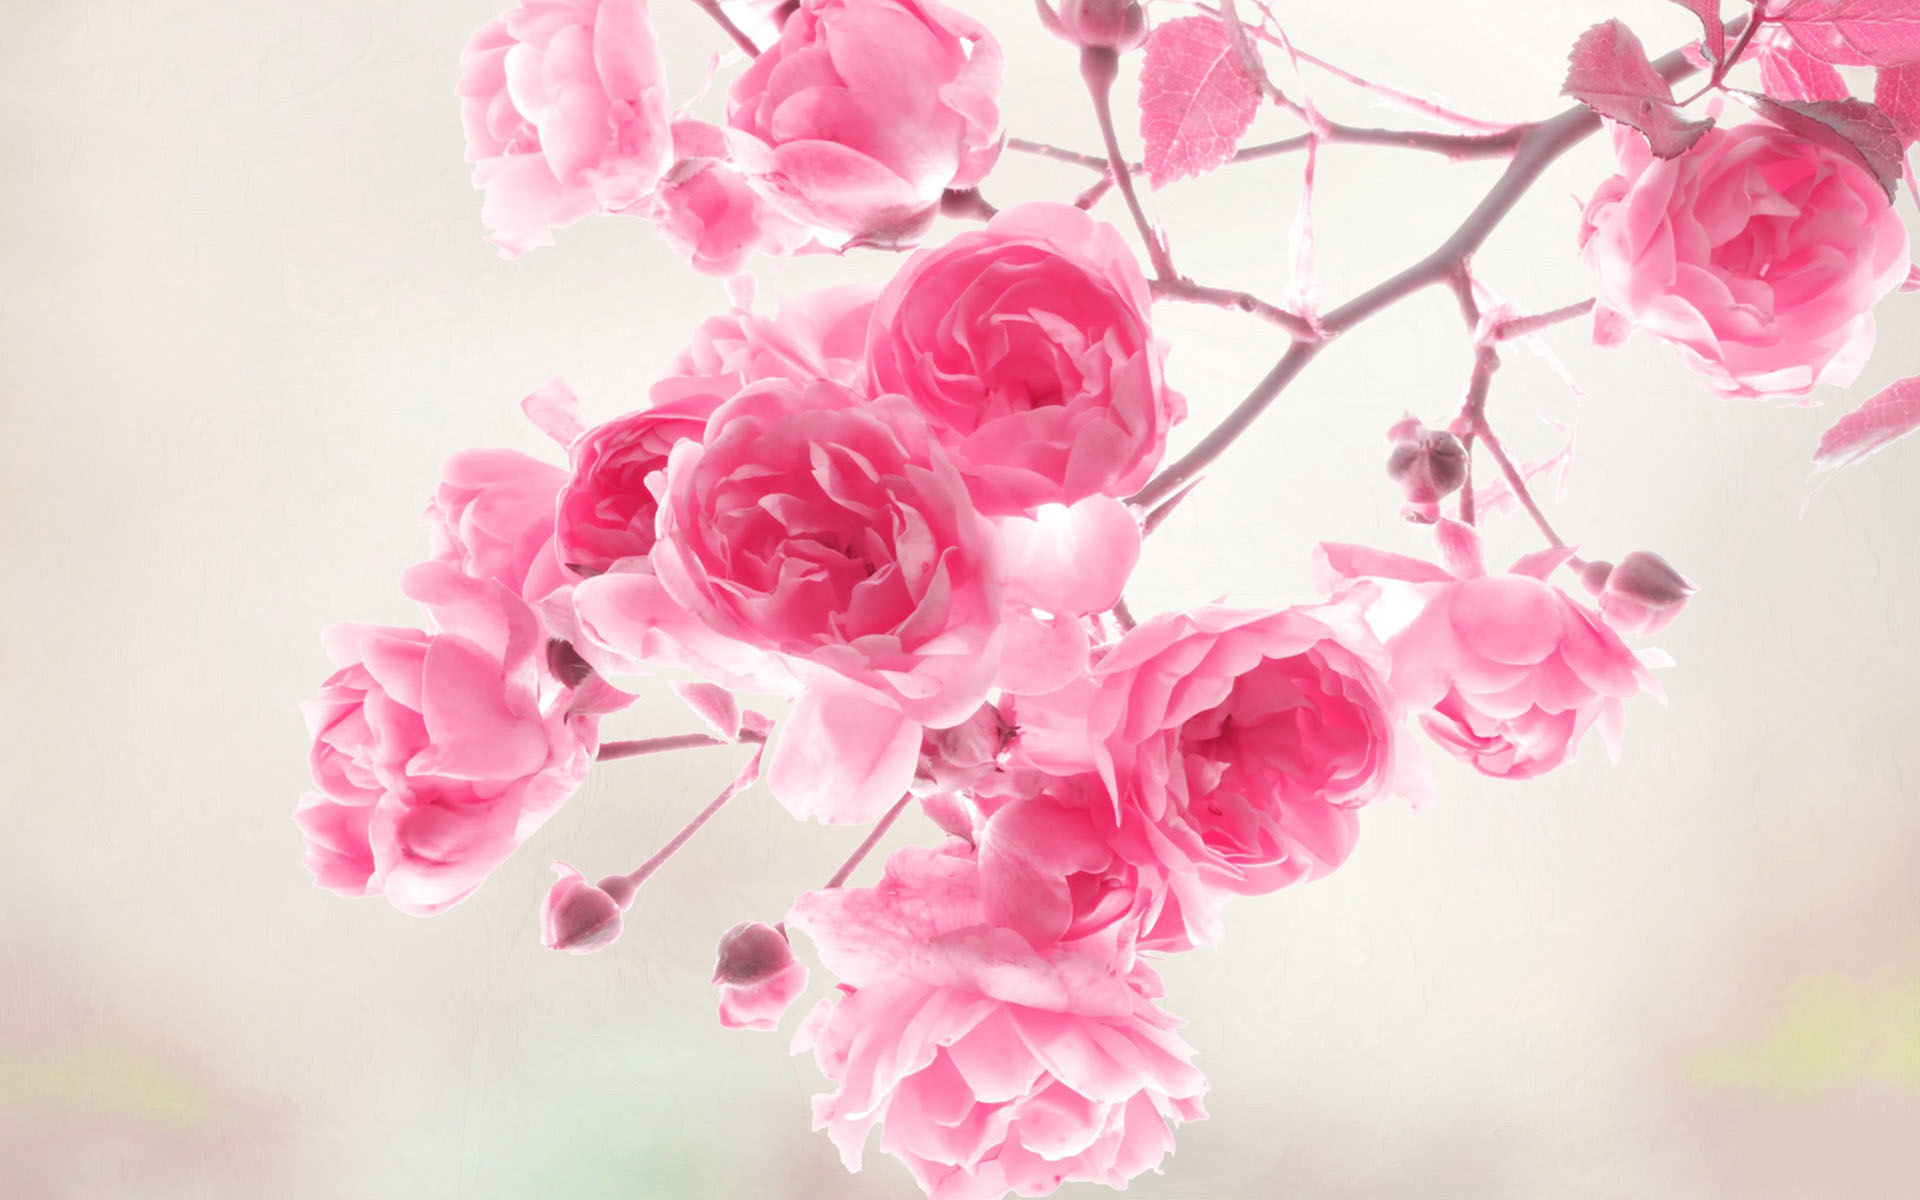 Flower Wallpaper Pink Rose